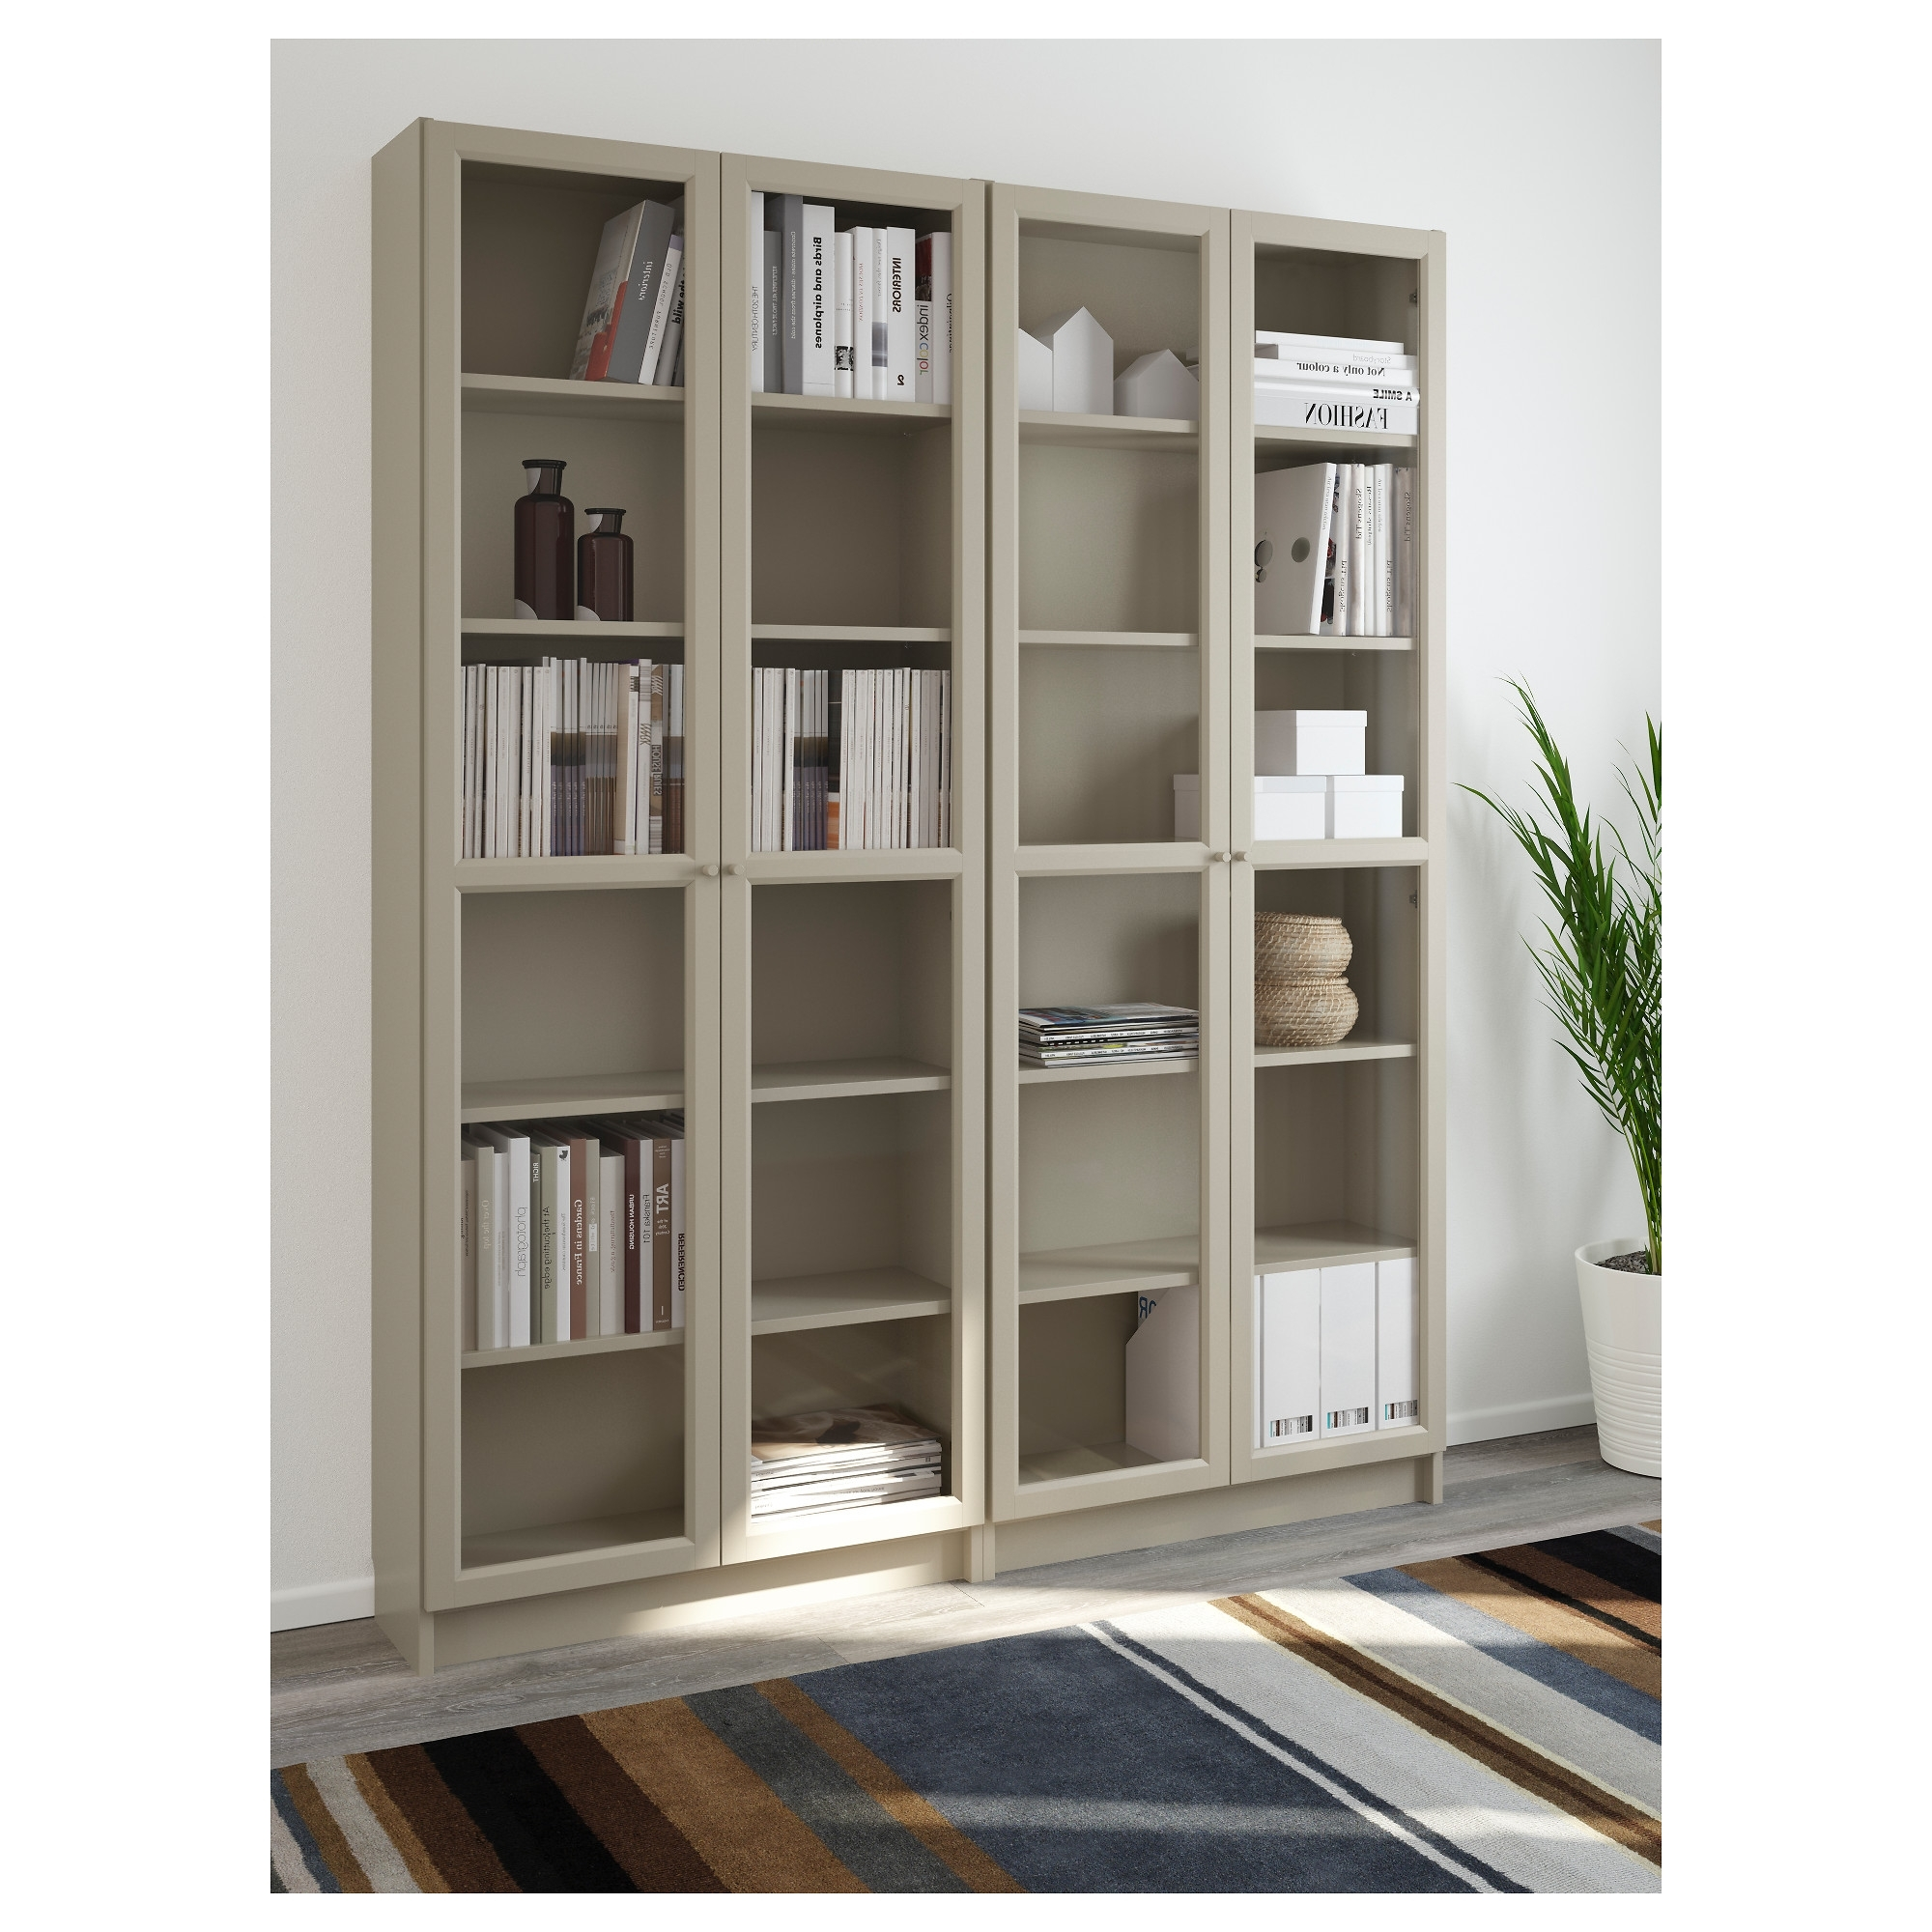 Ikea Billy Bookcases With Regard To Most Popular Billy Bookcase – Beige – Ikea (Gallery 10 of 15)